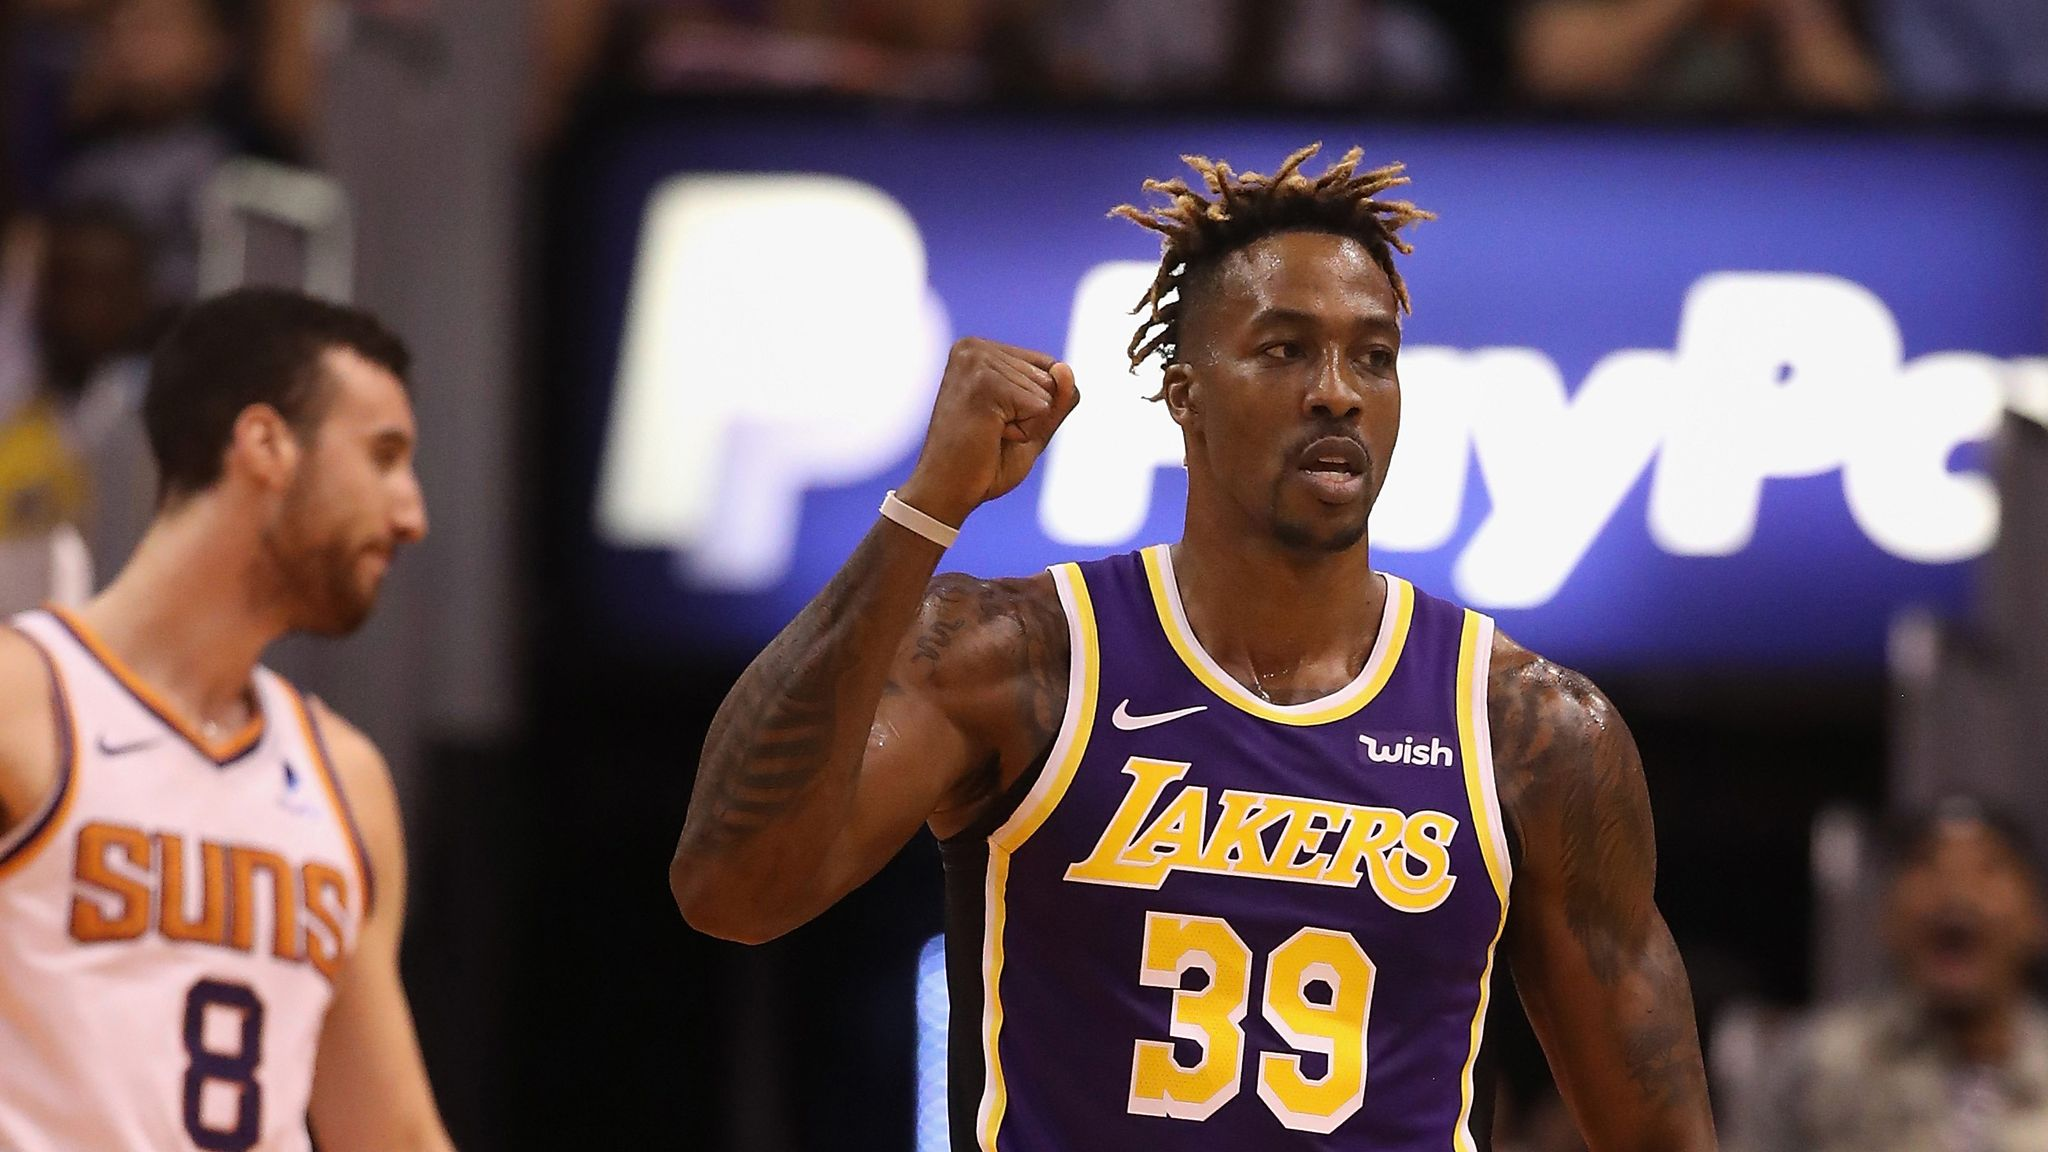 Dwight Howard the most-improved player so far this season, says Mike Tuck